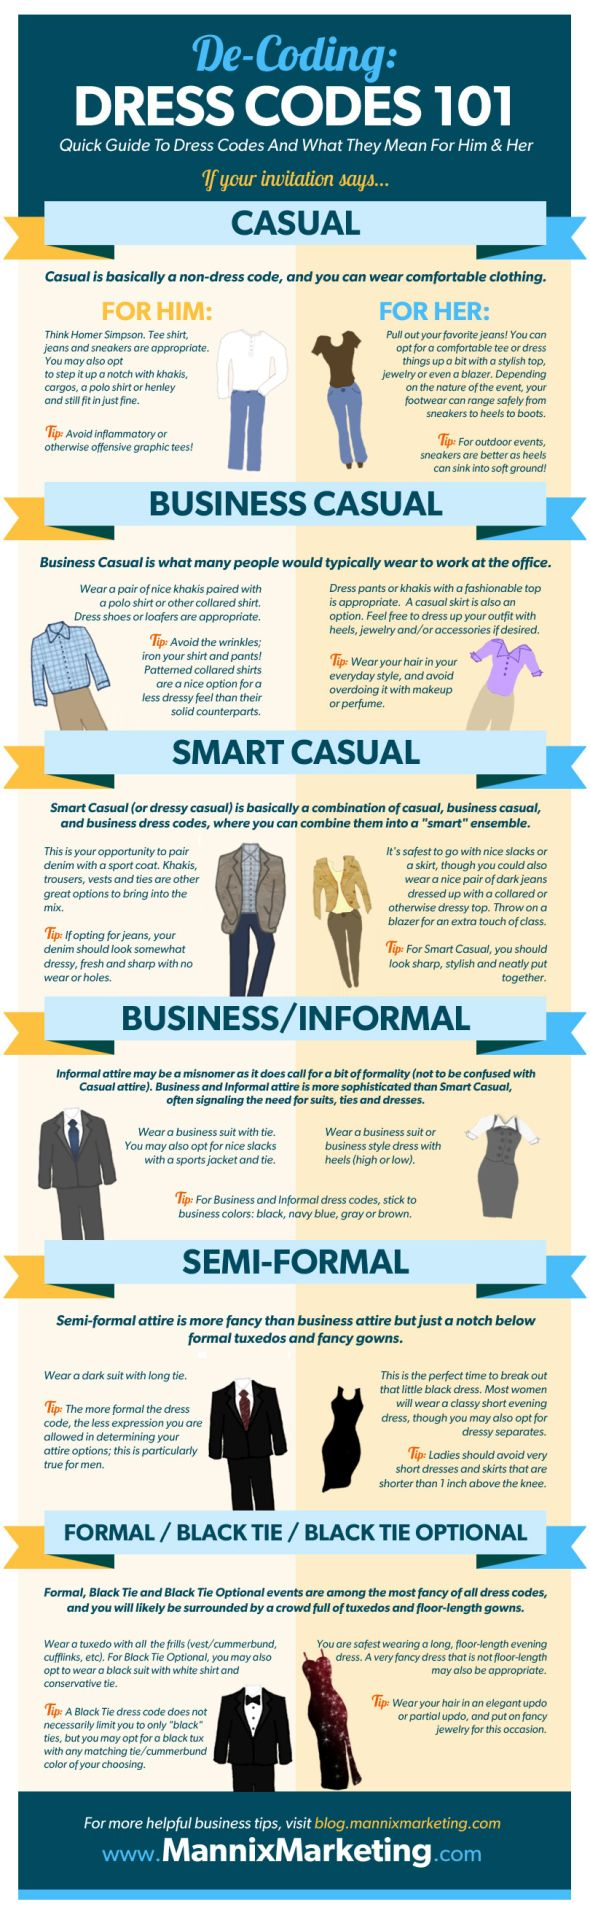 Dress Codes & What They Mean [Infographic] – His & Her Guide To Appropriate Attire For Each Dress Code | Mannix Marketing, Inc.